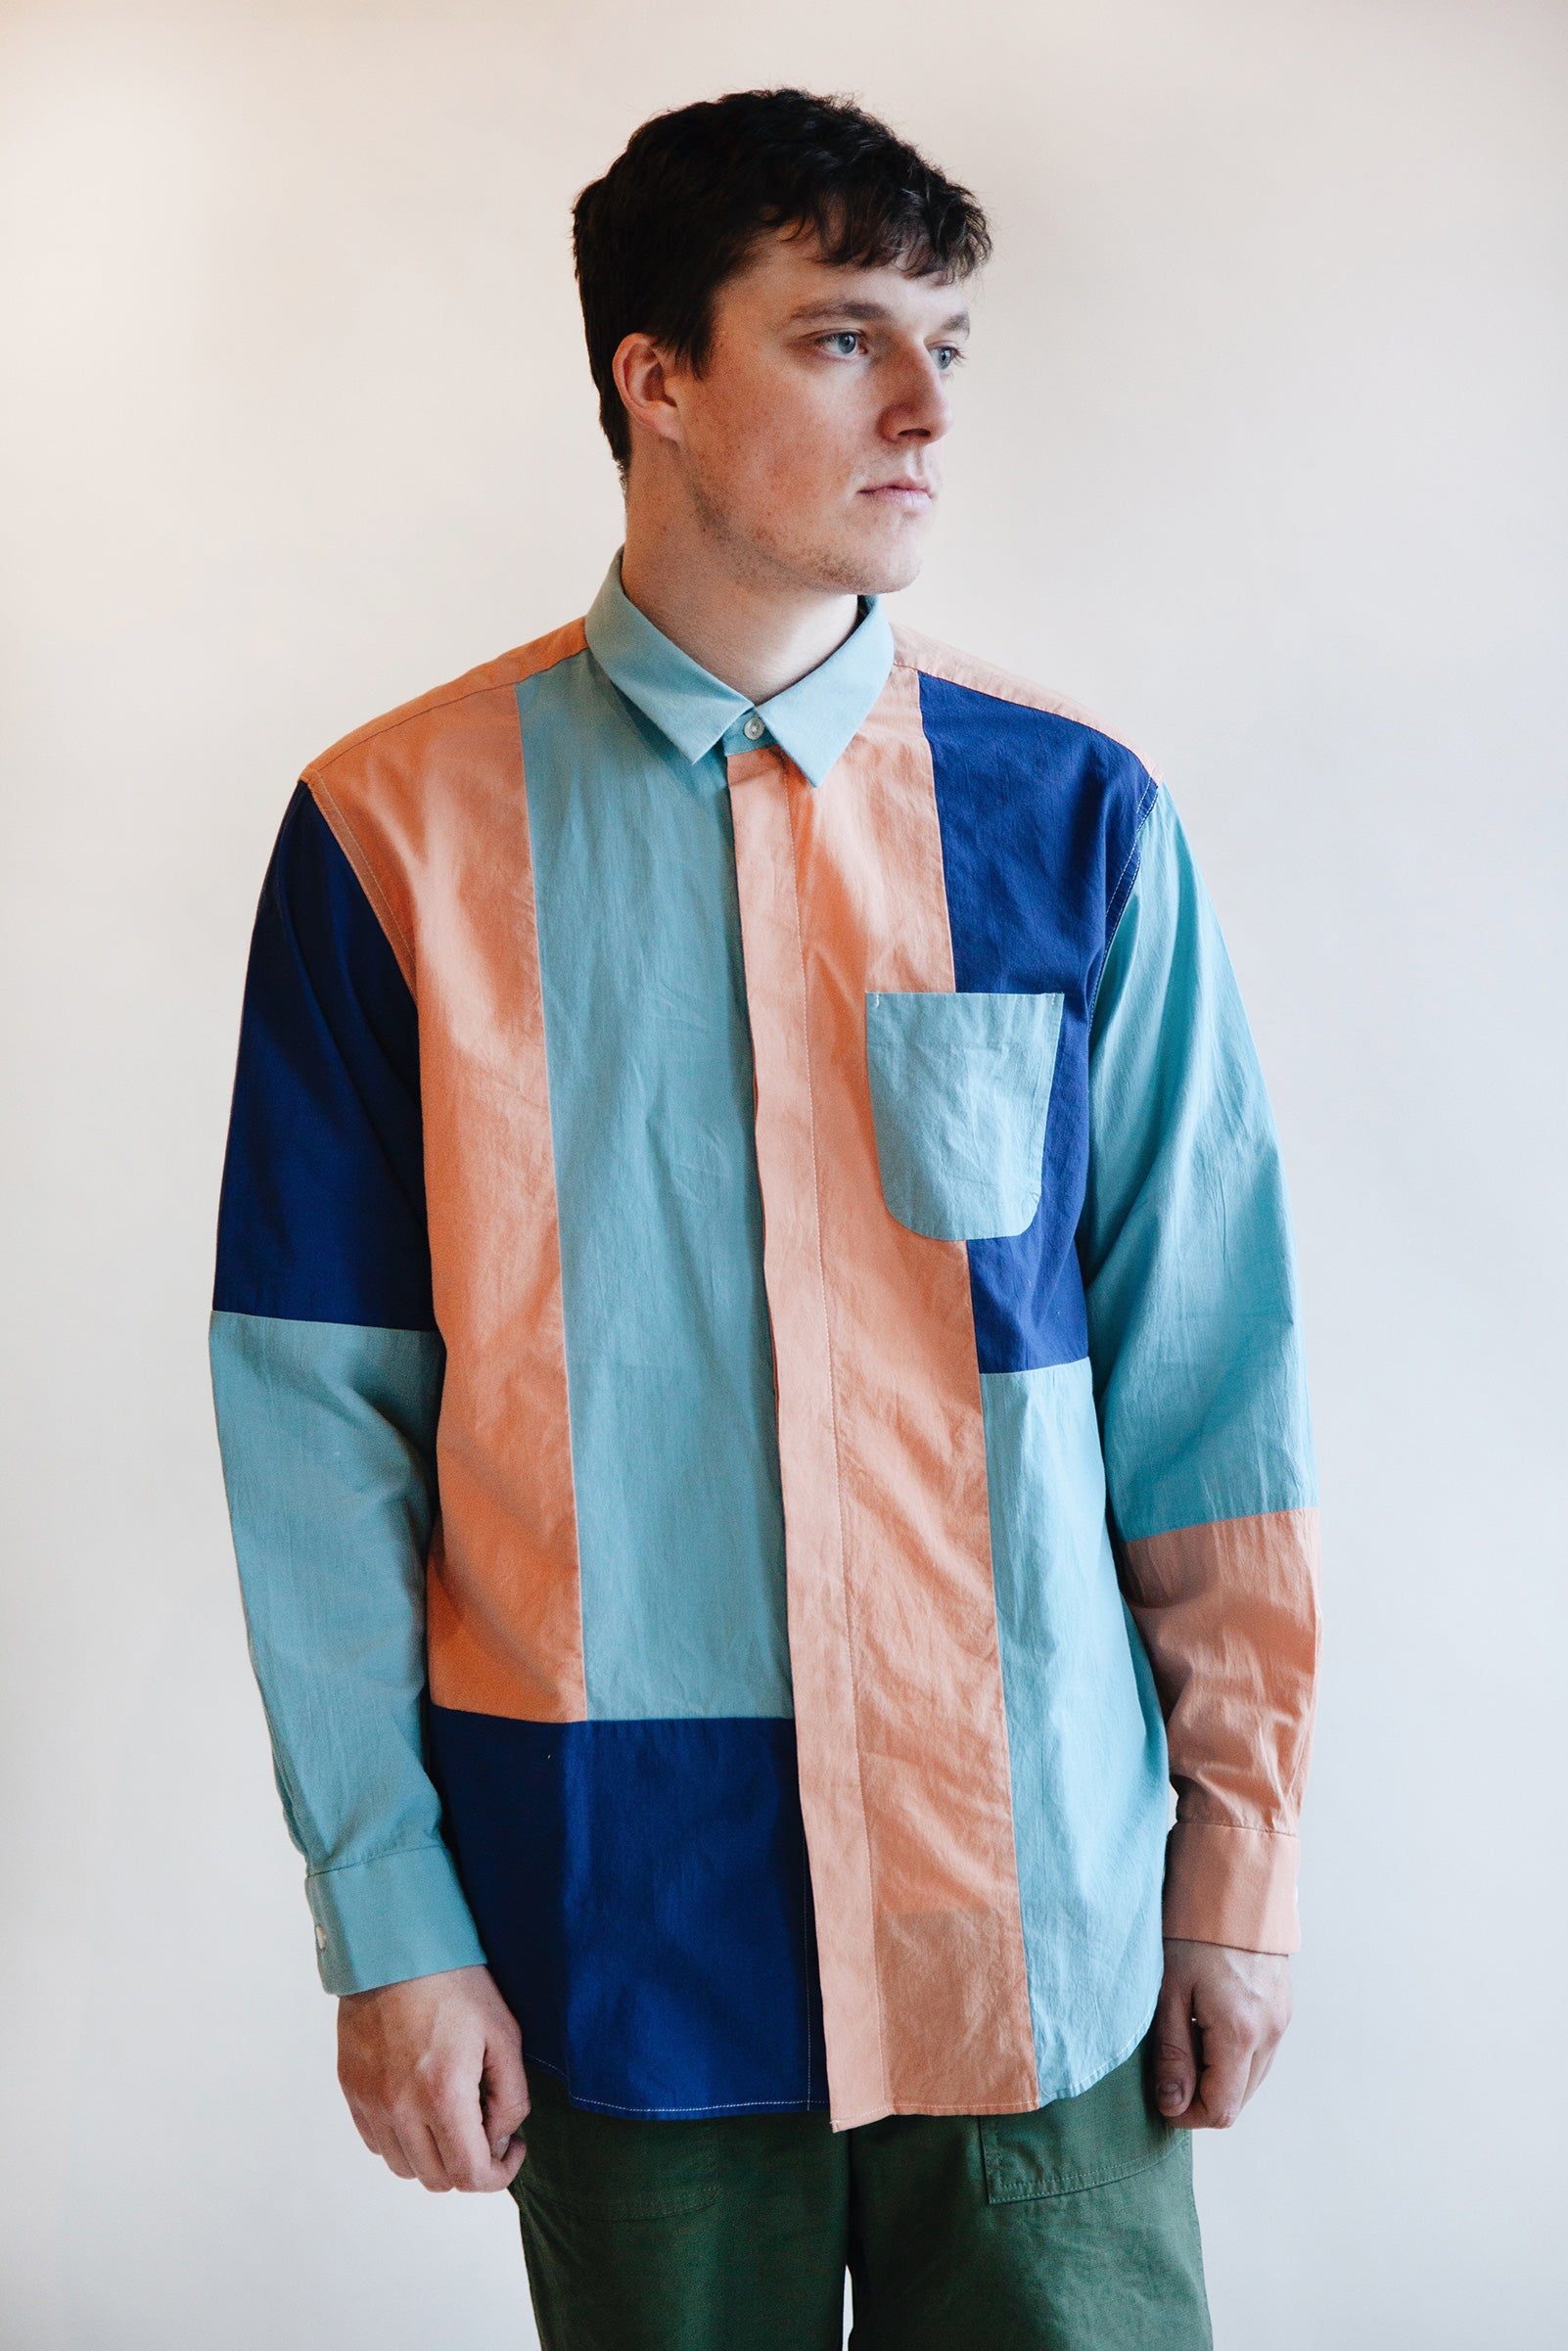 Engineered Garments - Combo Short Collar Shirt - Turquoise Lawn - Canoe Club